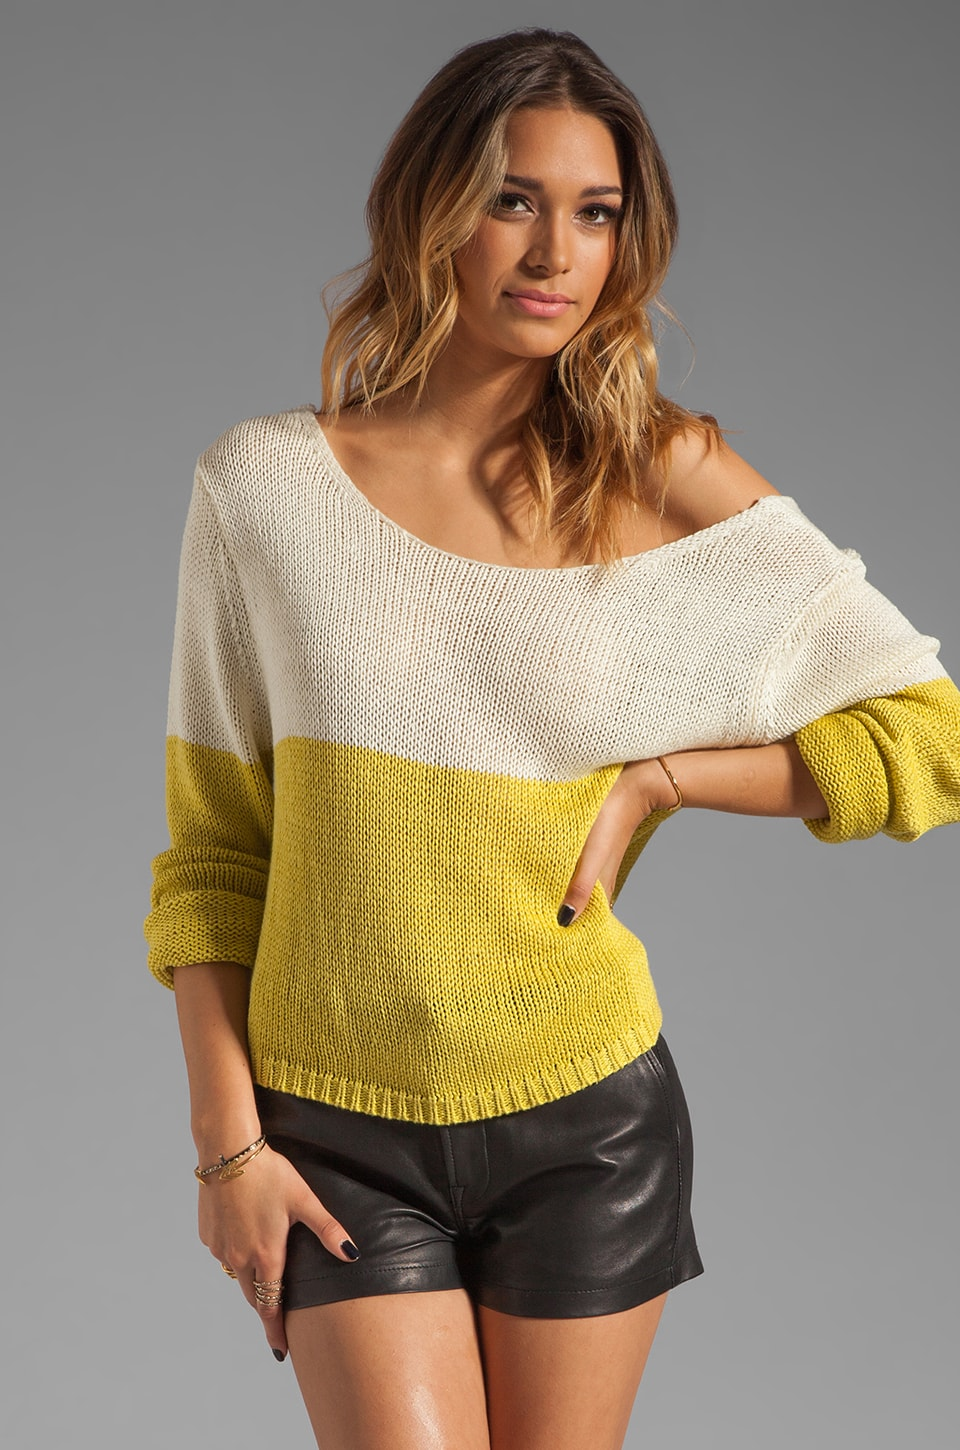 Lovers + Friends Sweet Escape Sweater in Citrus